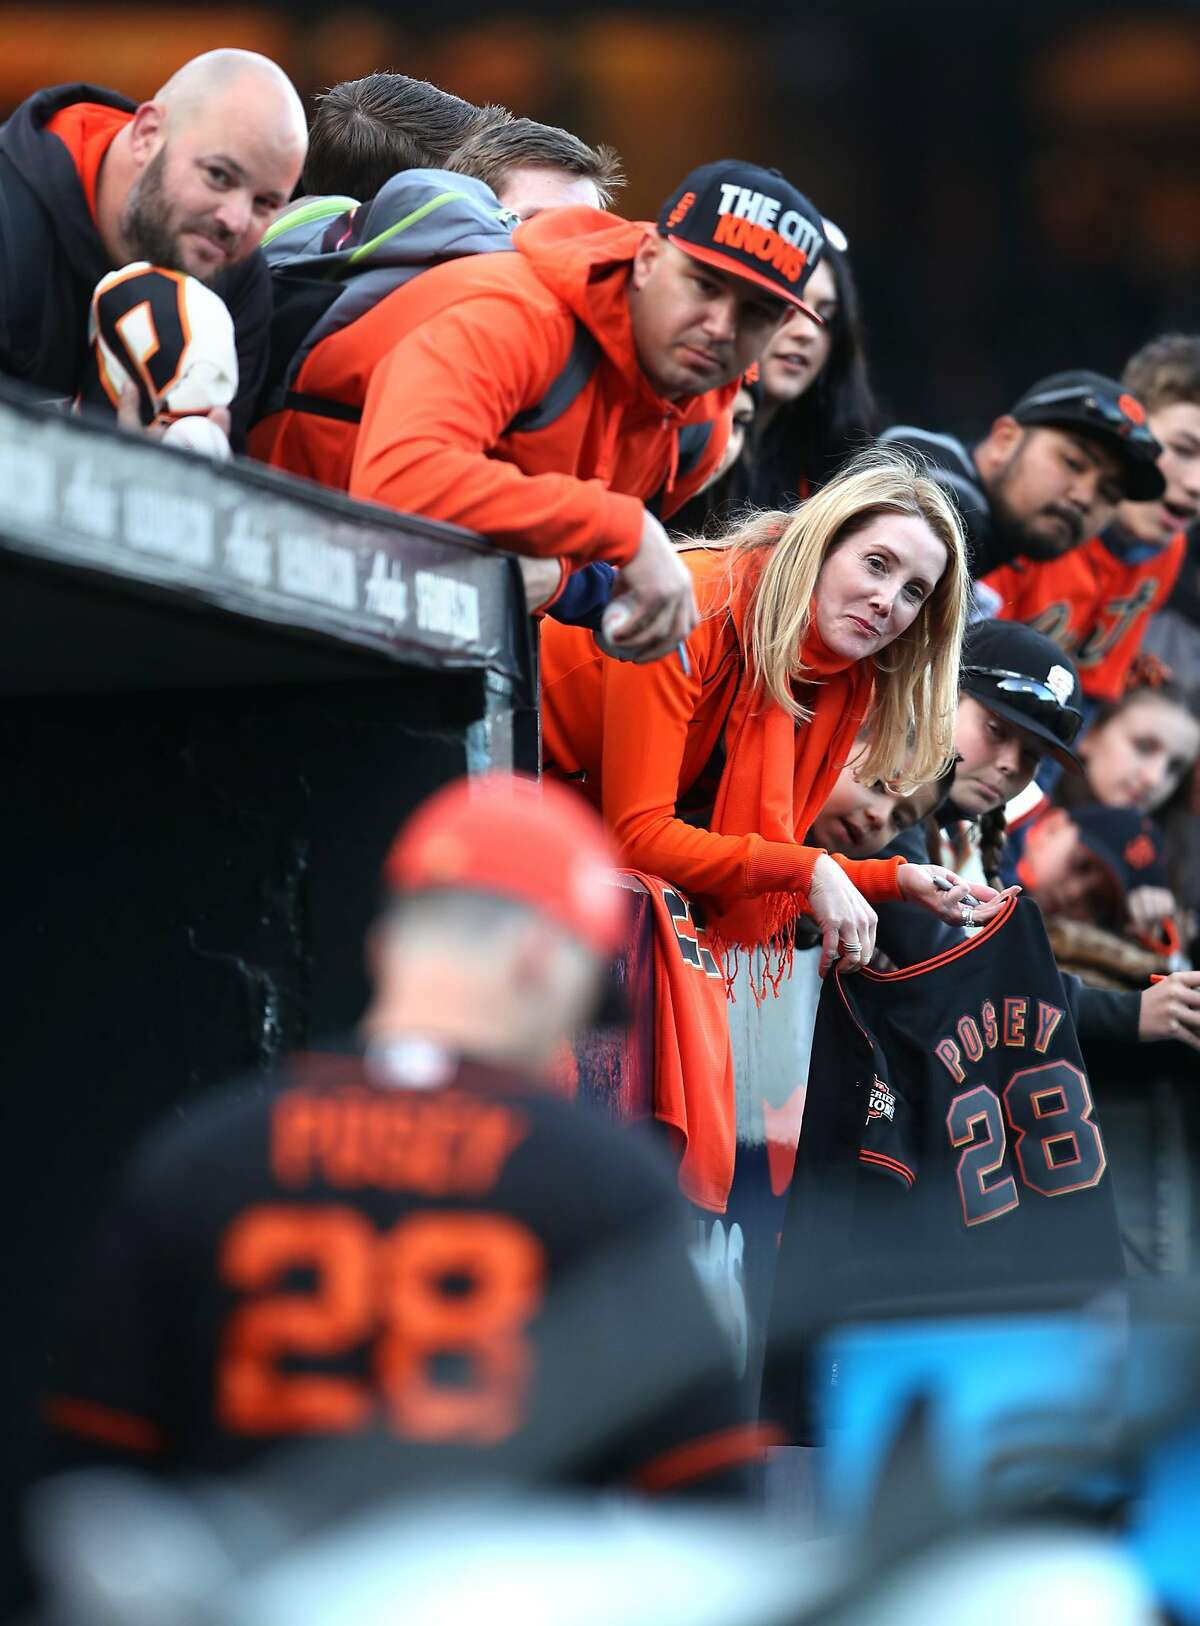 San Francisco Giants' fans try to get Buster Posey's autograph before Giants play Oakland Athletics during Bay Bridge Series game at AT&T Park in San Francisco, Calif., on Monday, March 26, 2018.